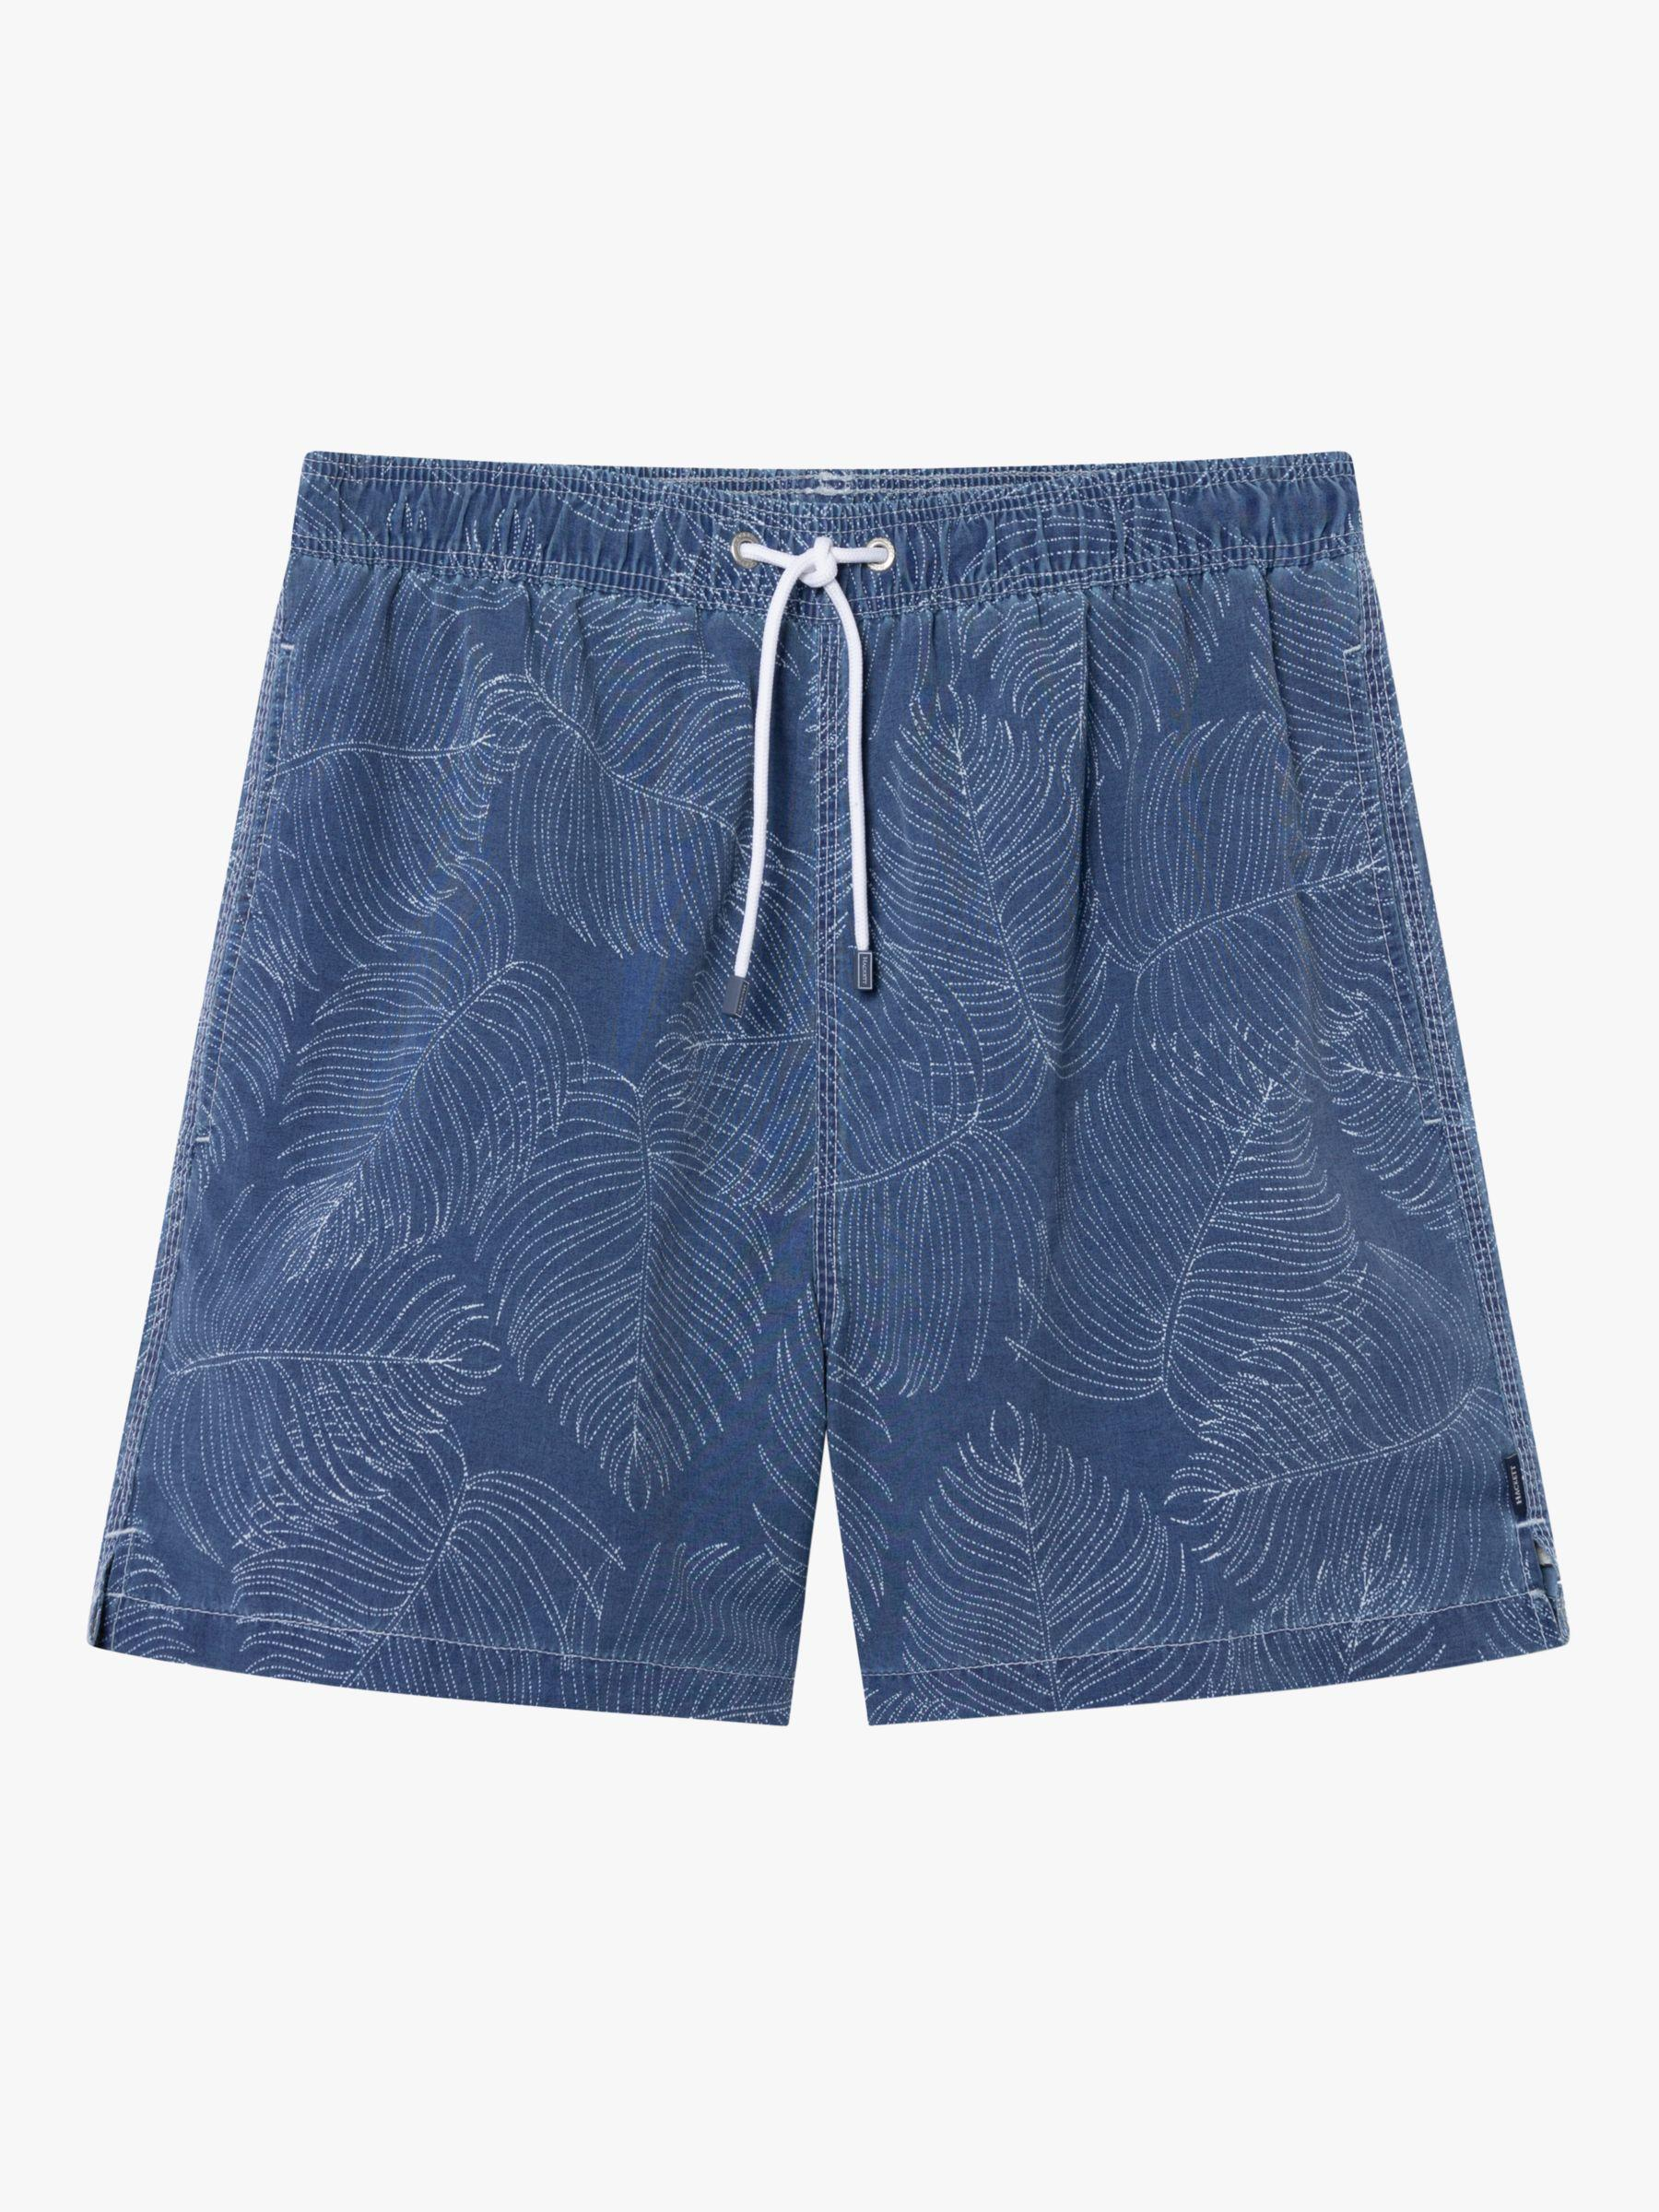 c0152cf6dd Hackett Leaf Swim Shorts in Blue for Men - Lyst